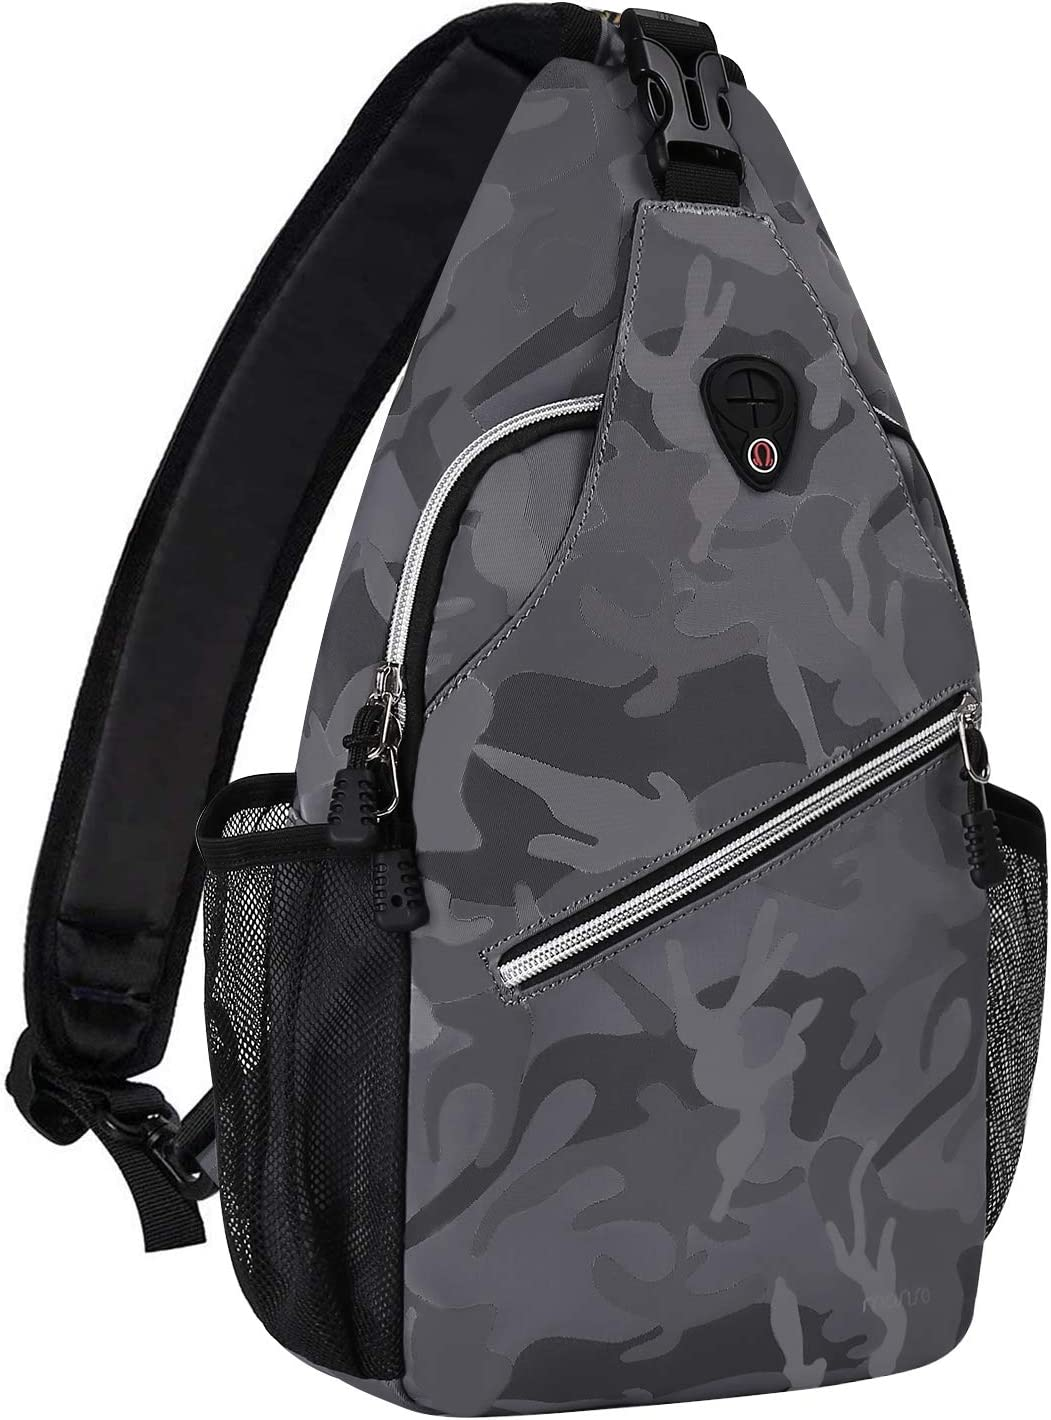 MOSISO Sling Backpack Travel Classic Hiking Crossbo Pattern NEW before selling Daypack Rope